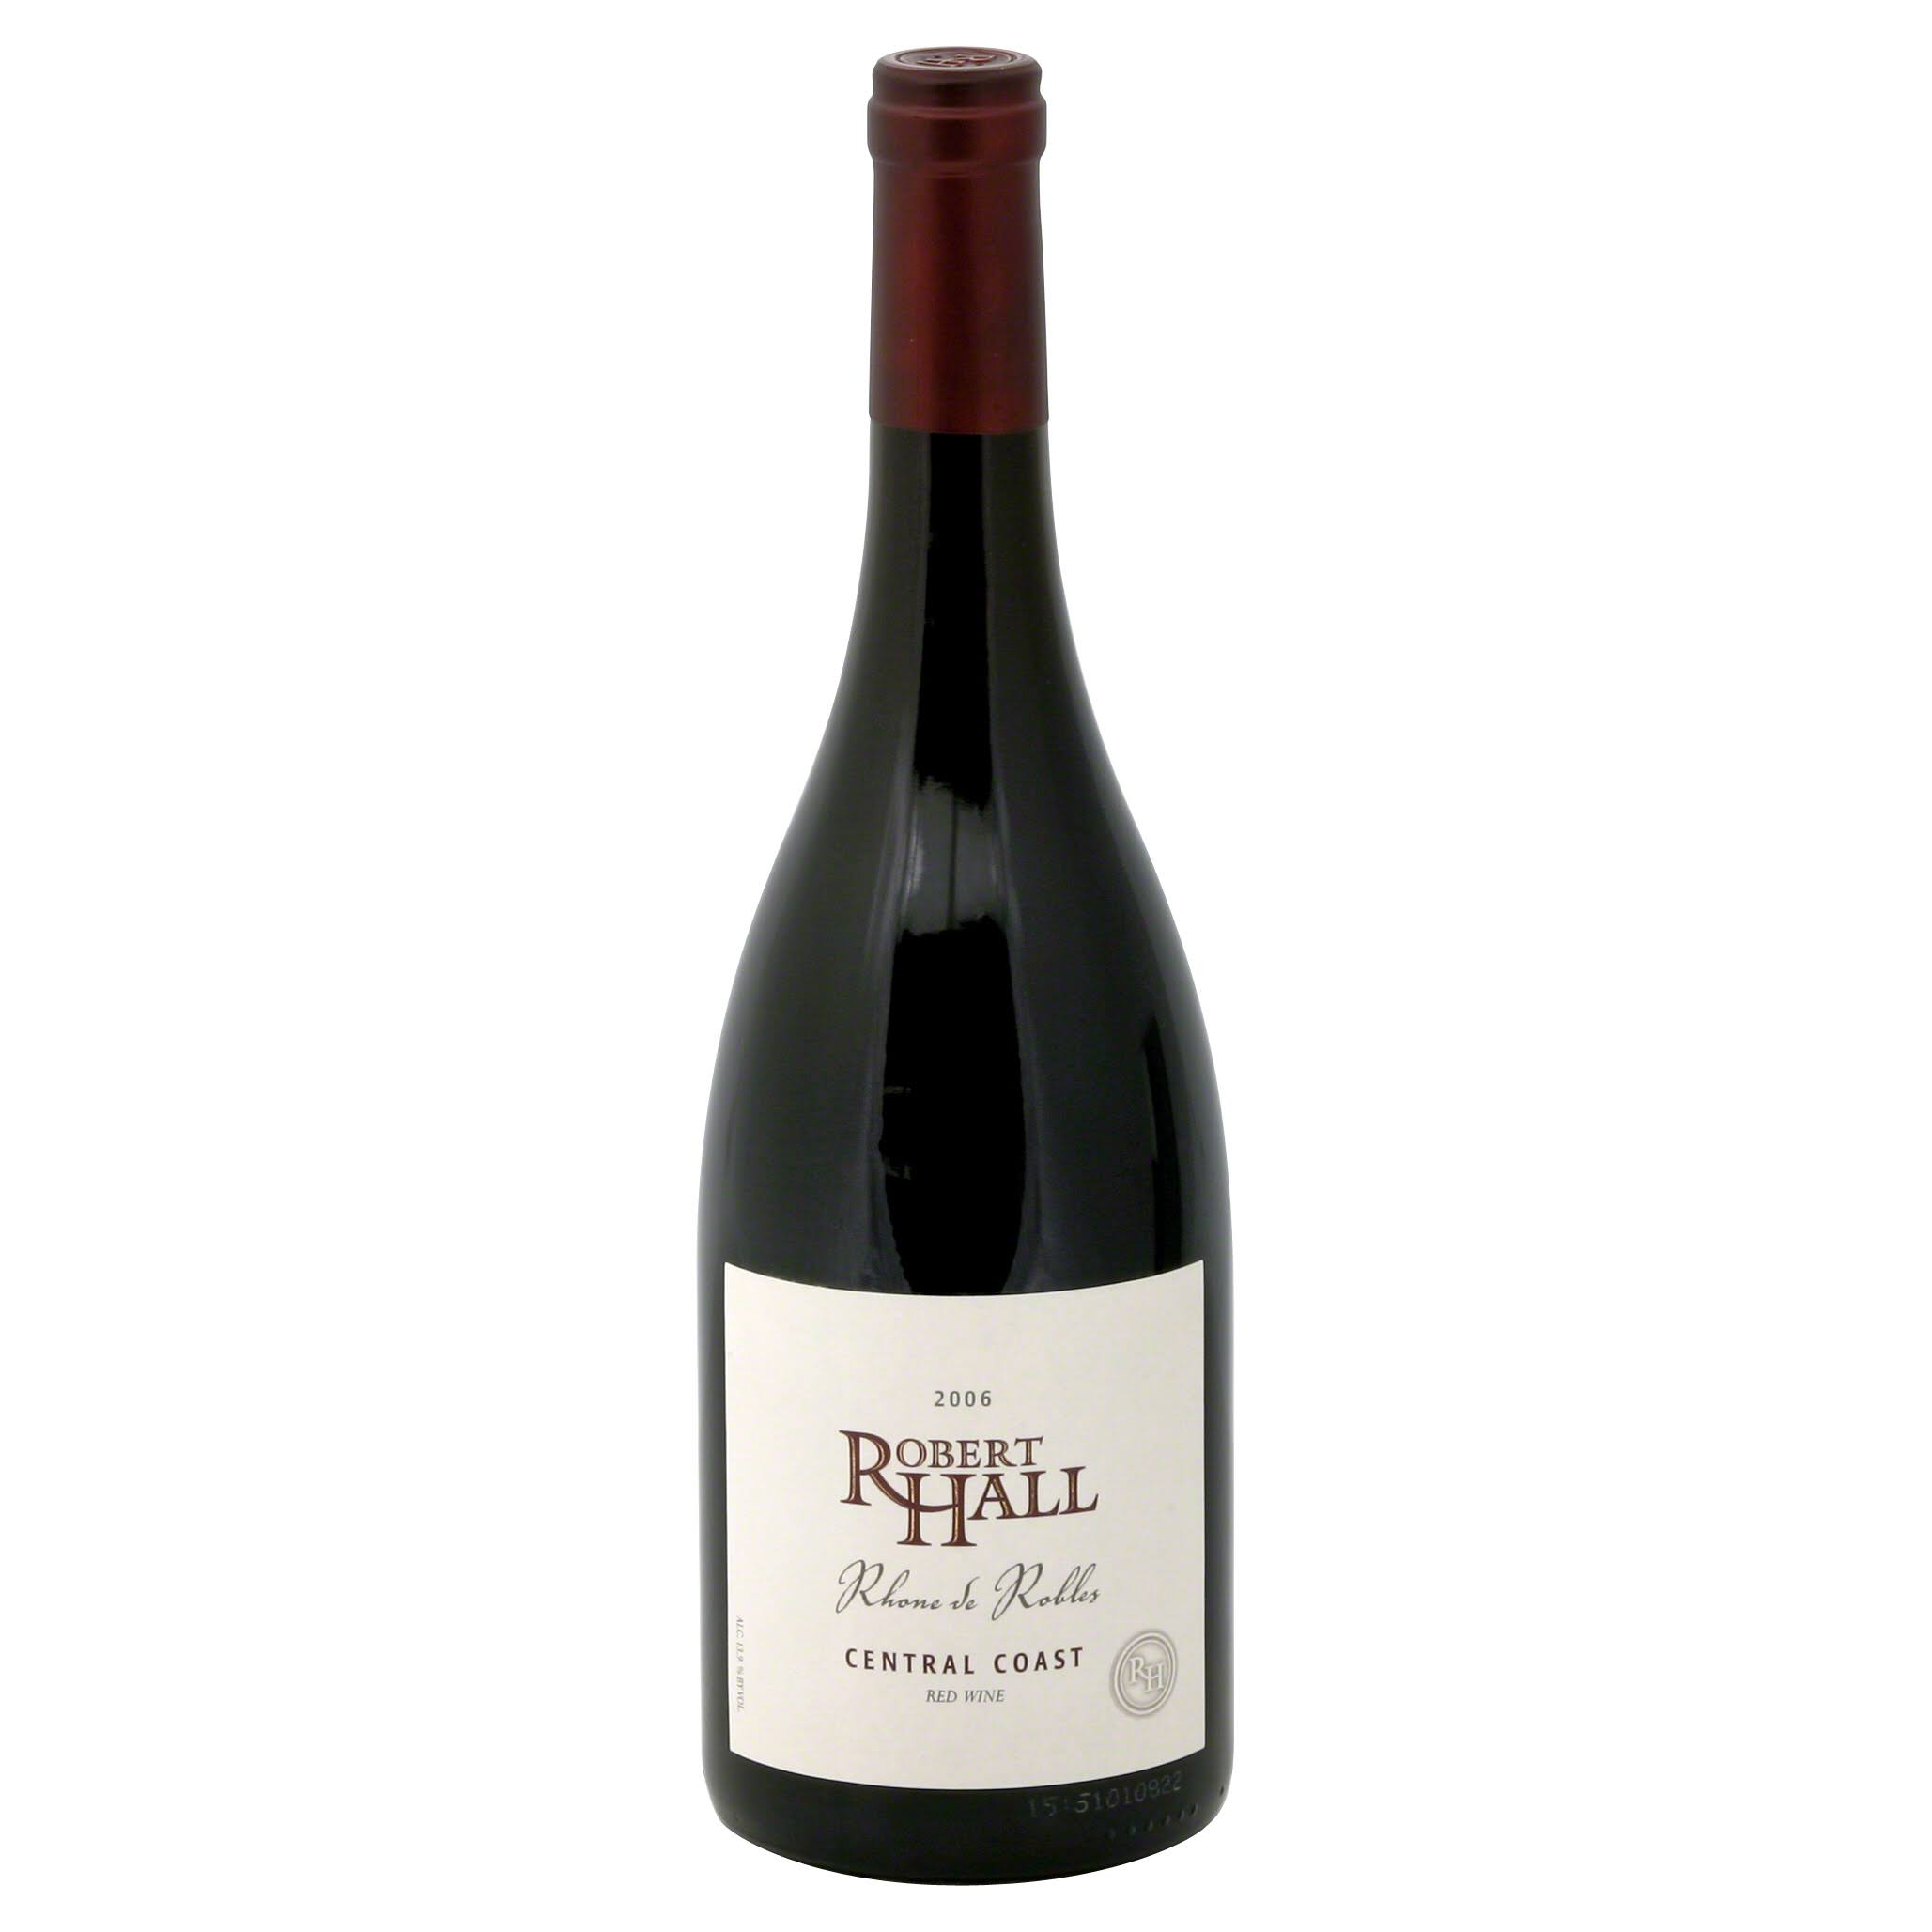 Robert Hall Rhone de Robles, Central Coast, 2006 - 750 ml